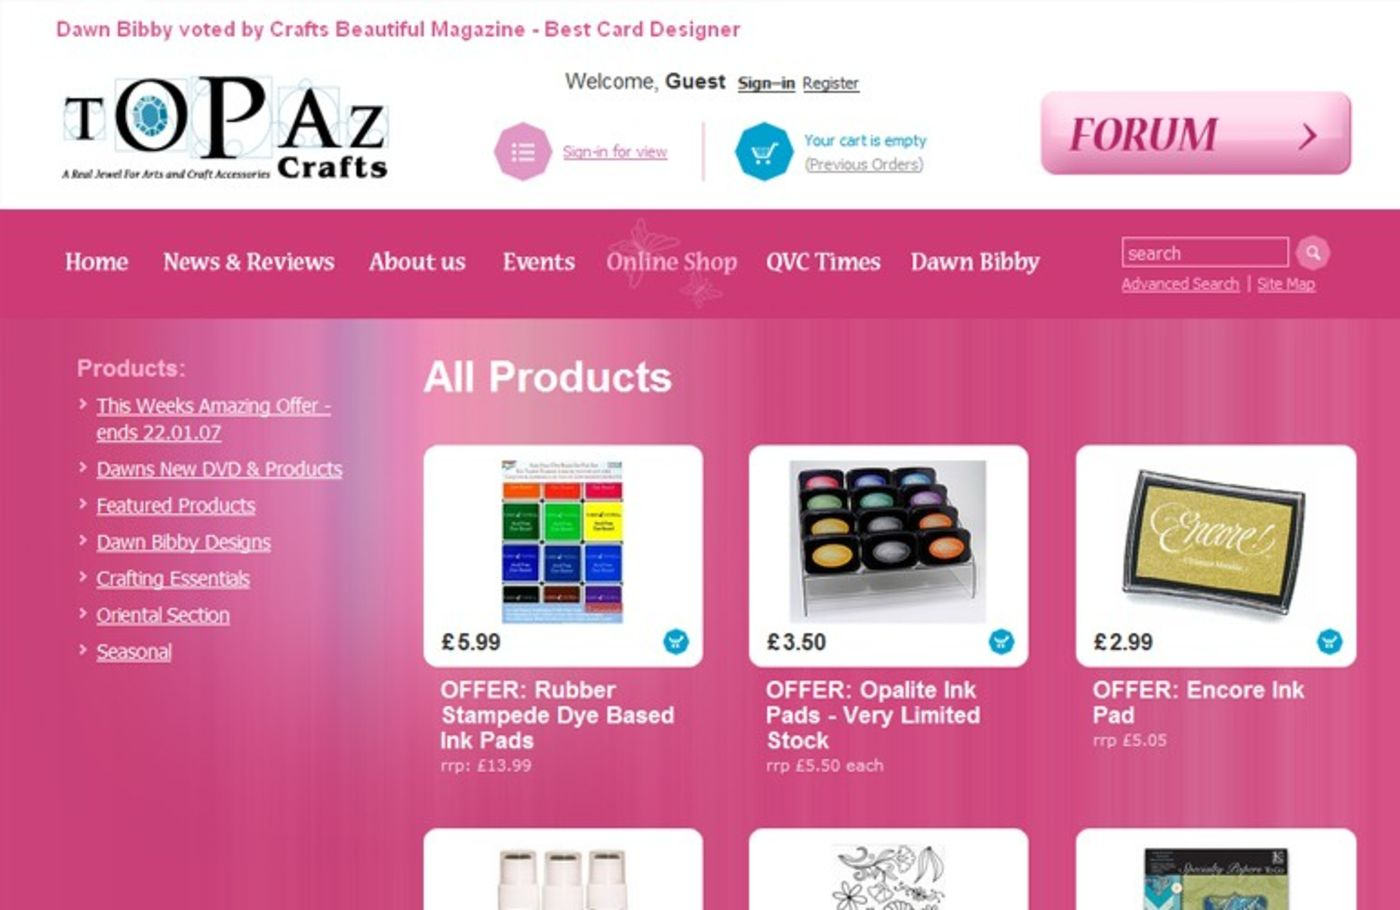 Topaz Crafts Products